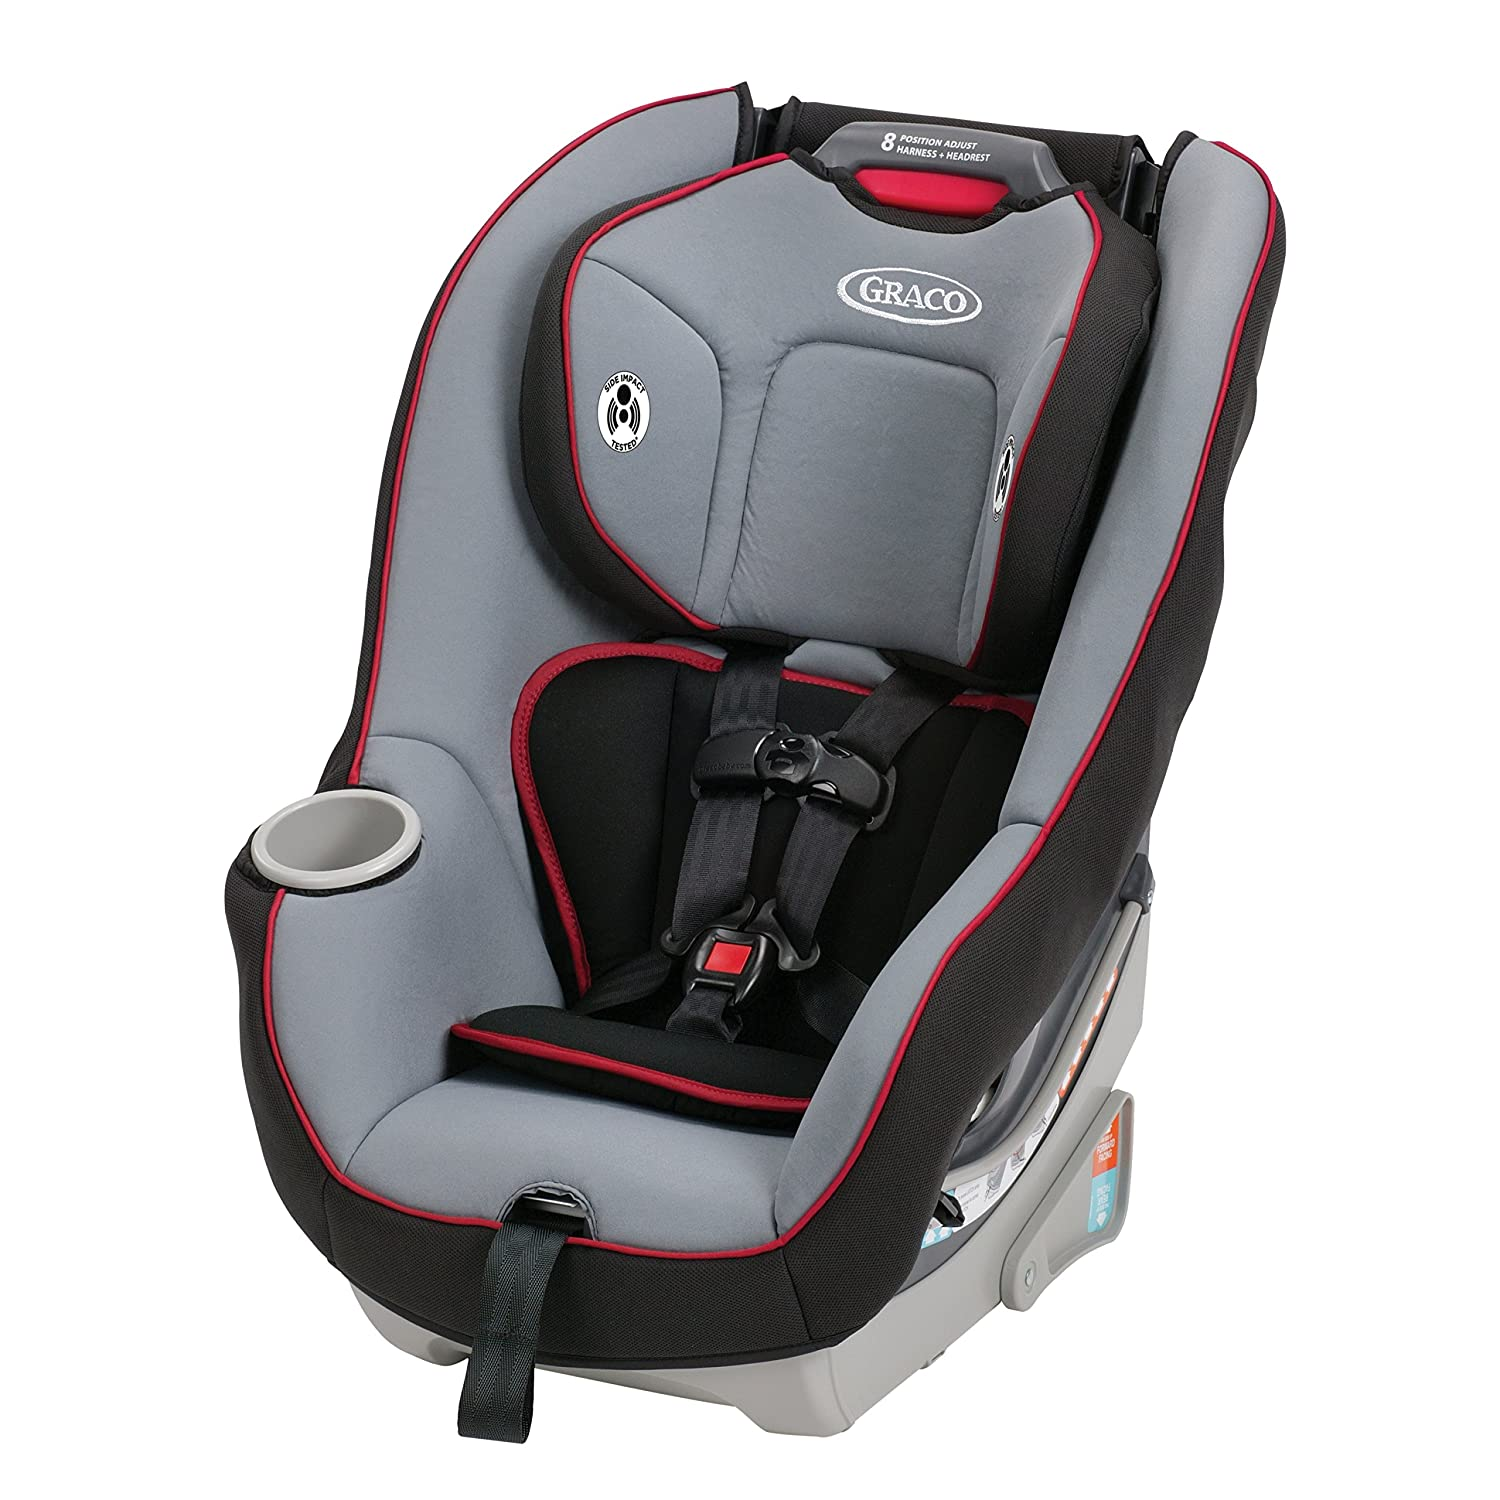 Amazon.com : Graco Contender 65 Convertible Car Seat, Chili Red, One